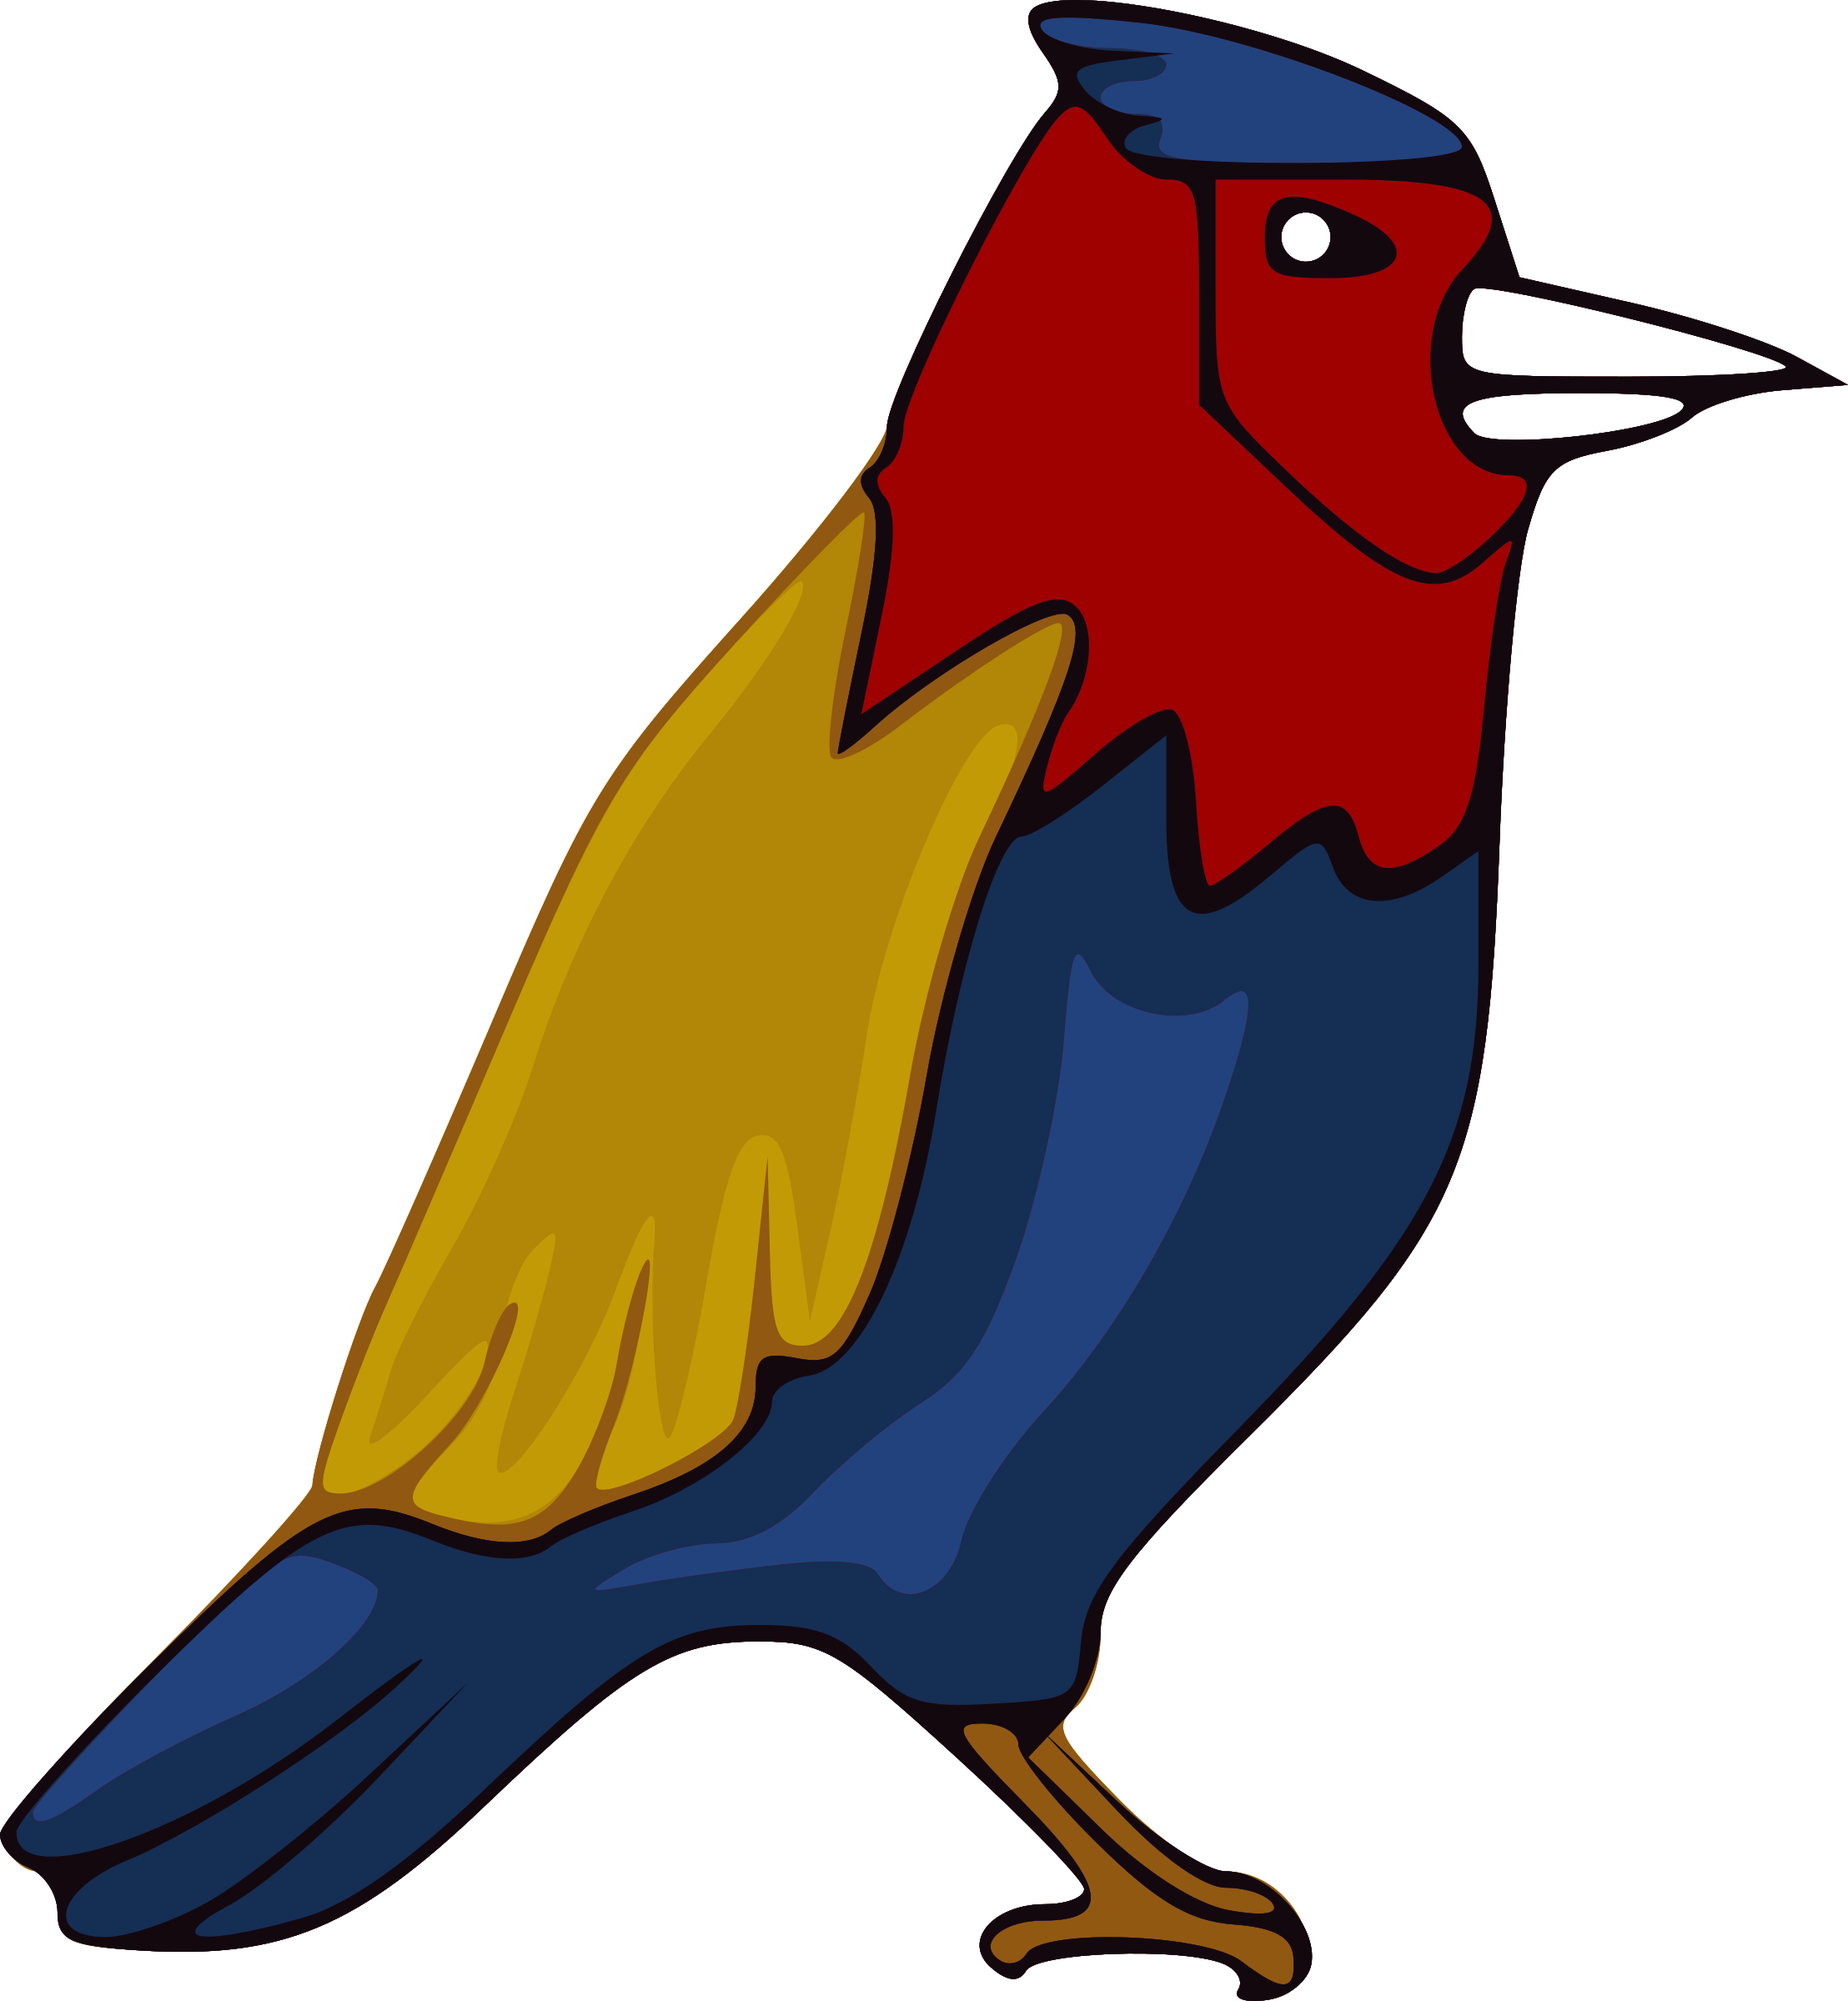 graphic transparent Jay clipart. Colourful big image png.